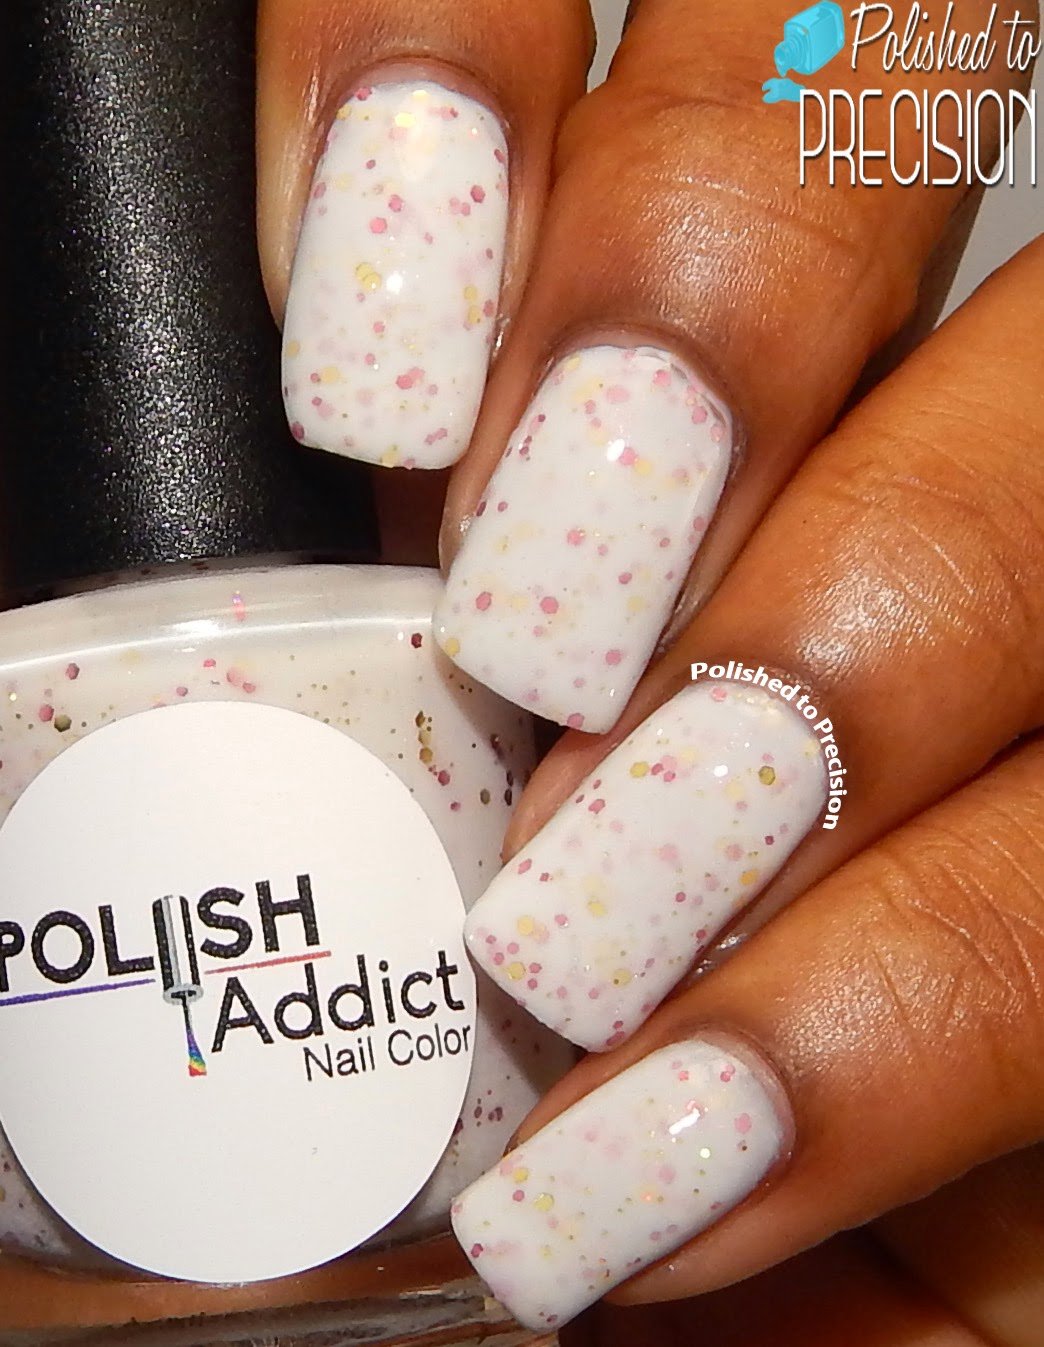 Polished to Precision: Polish Addict Nail Color Romeo & Juliet